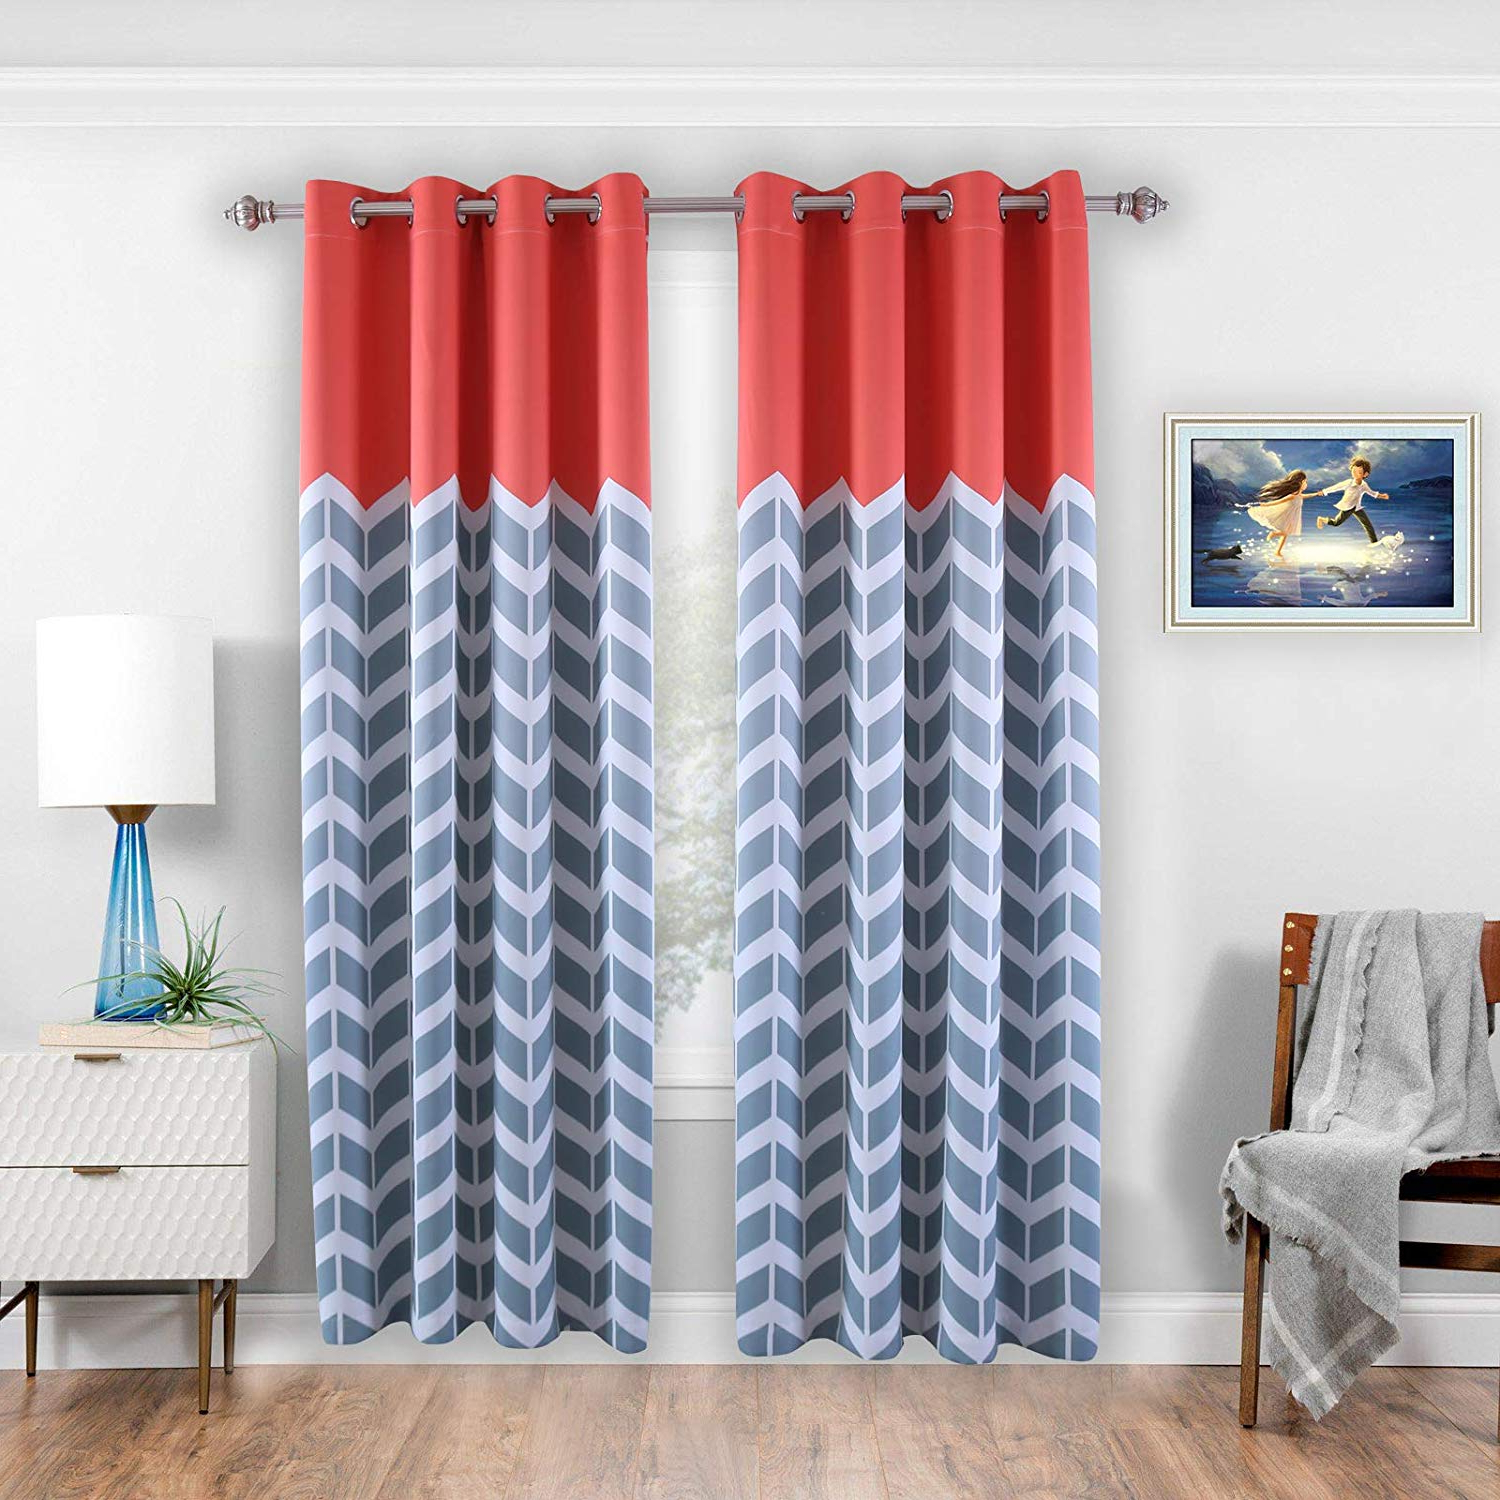 """Donren Chevron Pattern Thermal Insulated Blackout Curtains (2 Panels)  Grommet Window Curtain Panel Pair For Living Room, Coral 52"""" Width X 84""""  Length Regarding Newest Thermal Insulated Blackout Curtain Panel Pairs (View 4 of 20)"""